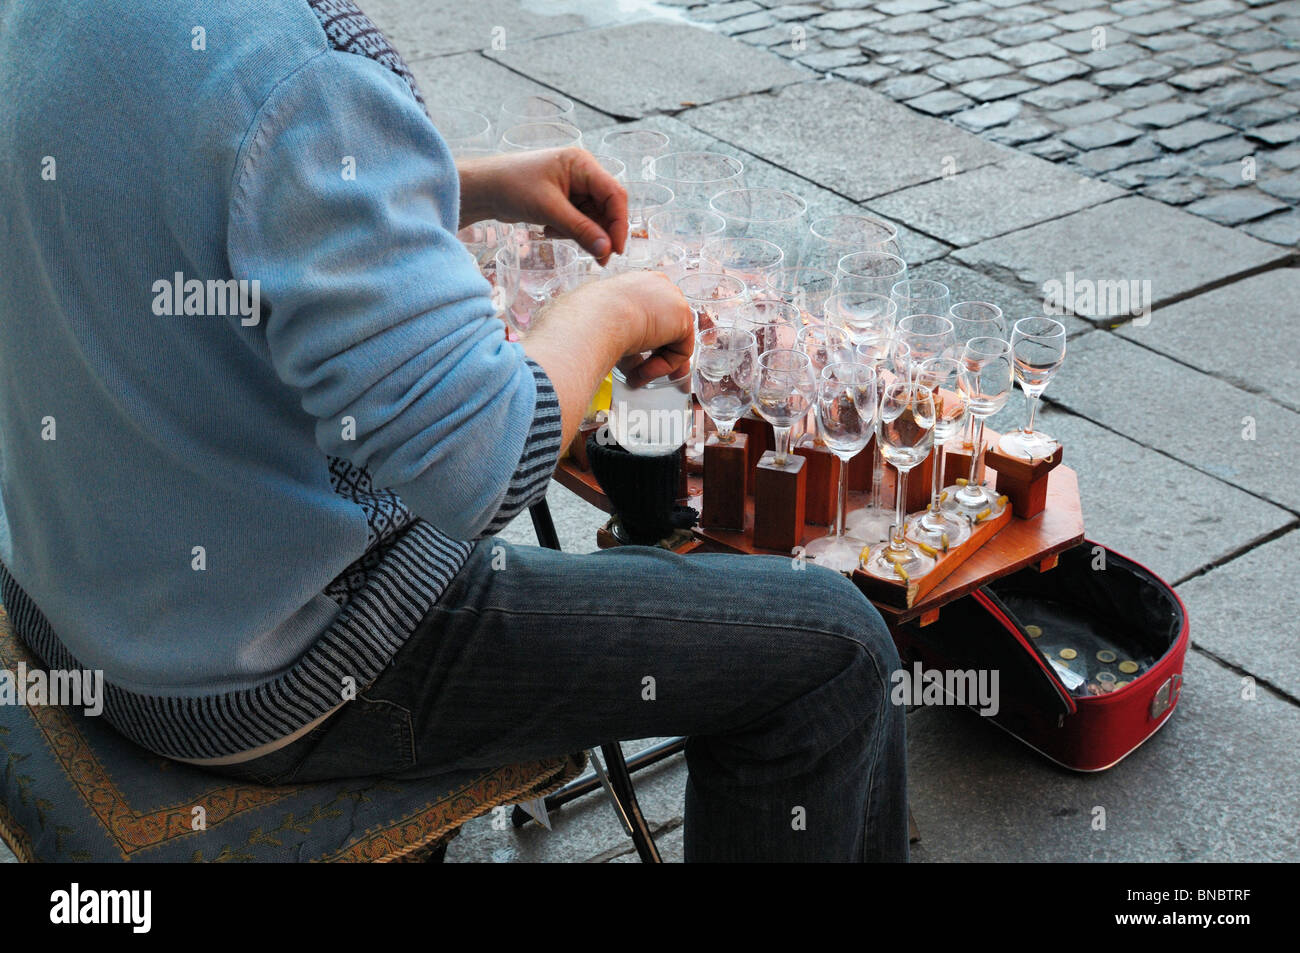 Street musician playing the 'glass harp' in central Madrid, Spain - Stock Image